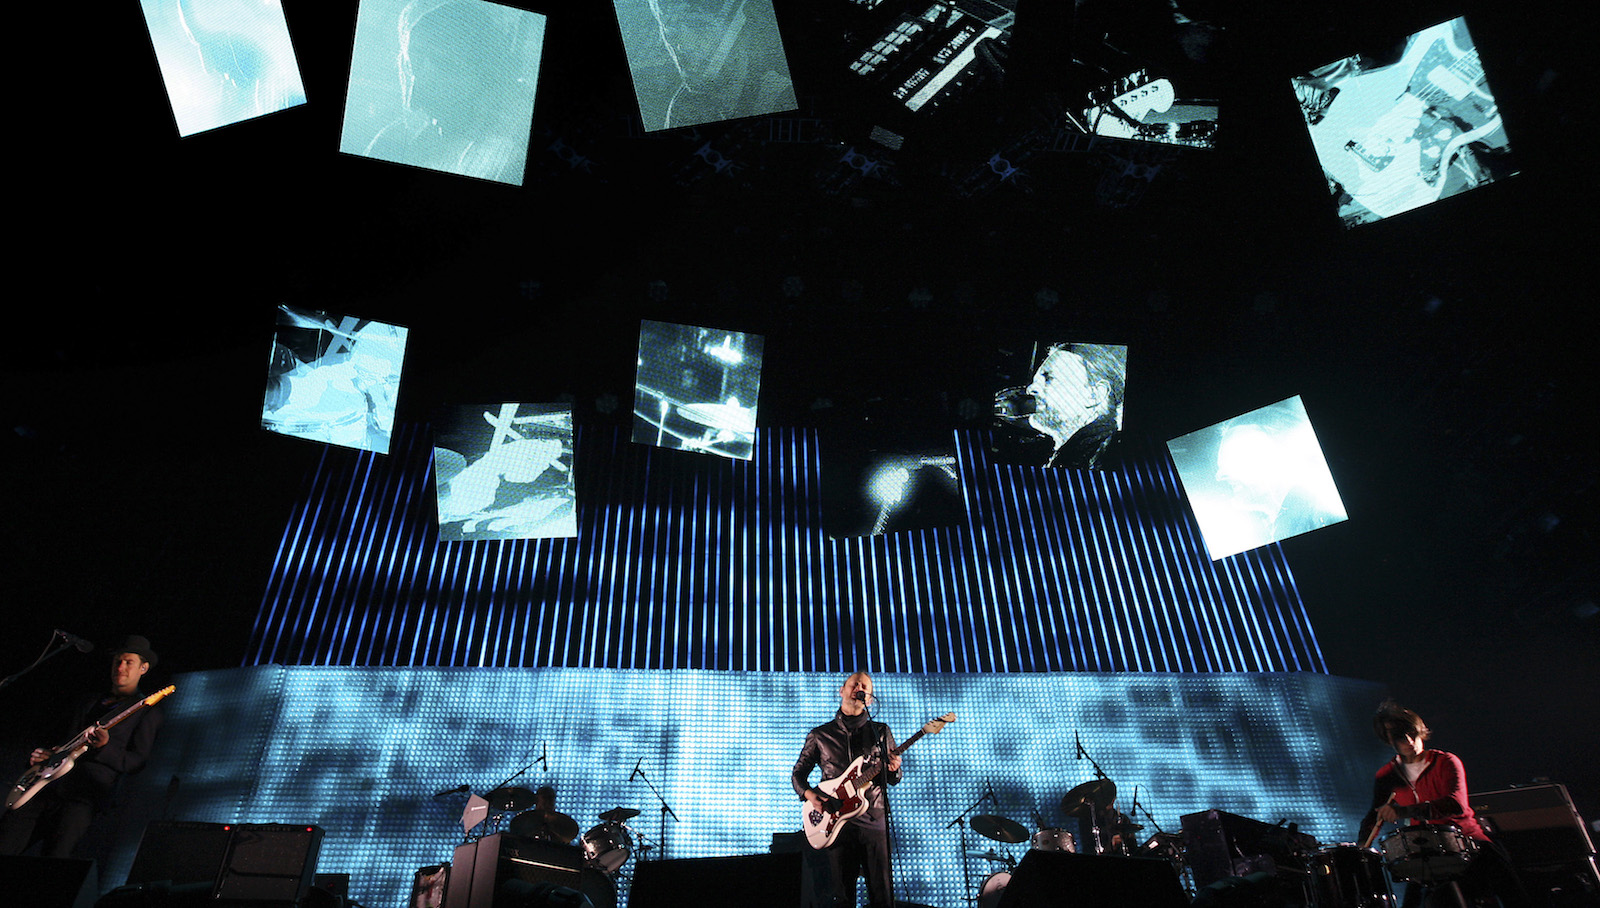 Radiohead performs at the Coachella Valley Music and Arts Festival in Indio, California April 14, 2012. REUTERS/David McNew/File Photo - RTX2COSN